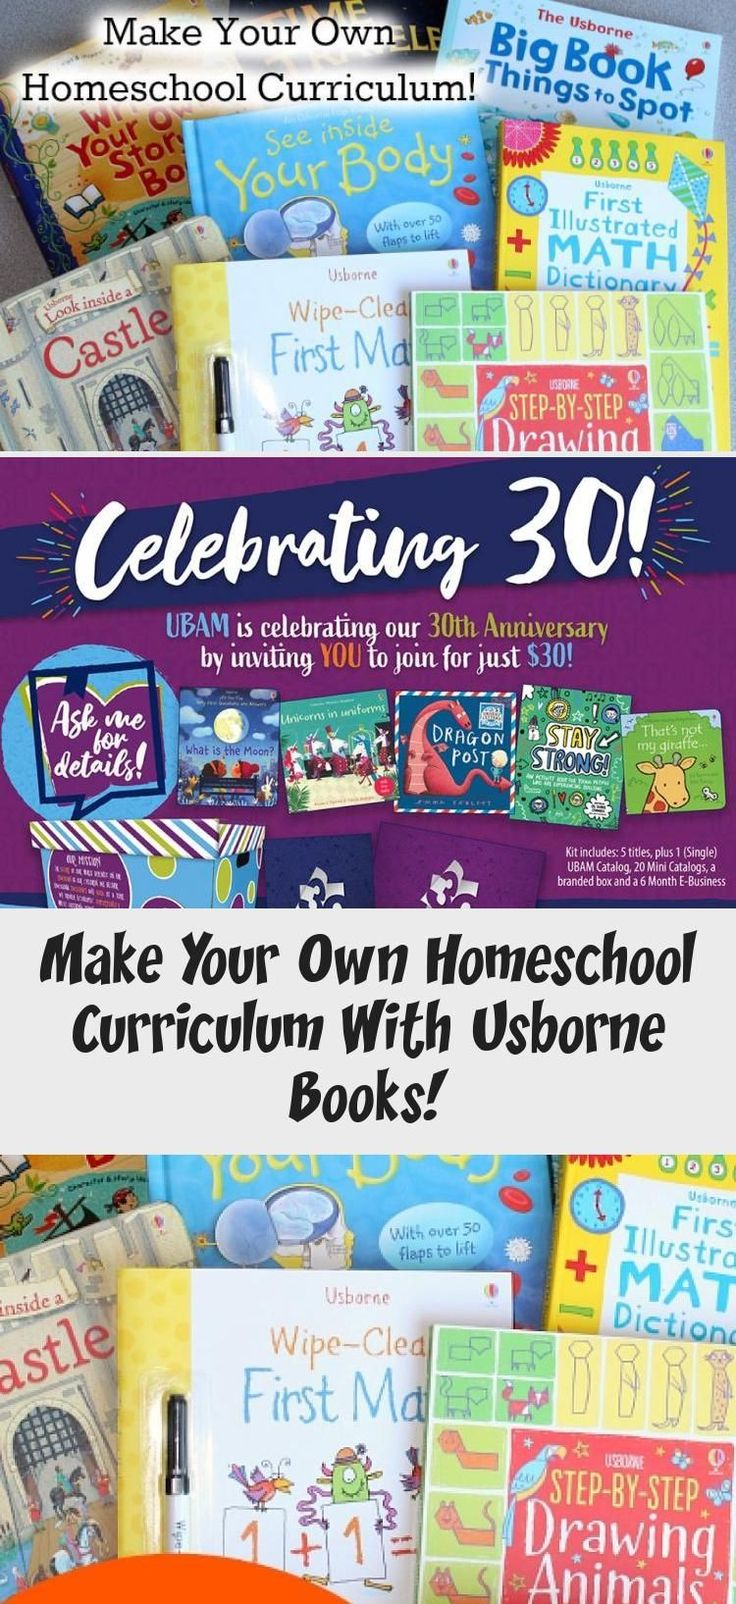 How to make your Own Homeschool Curriculum with Usborne